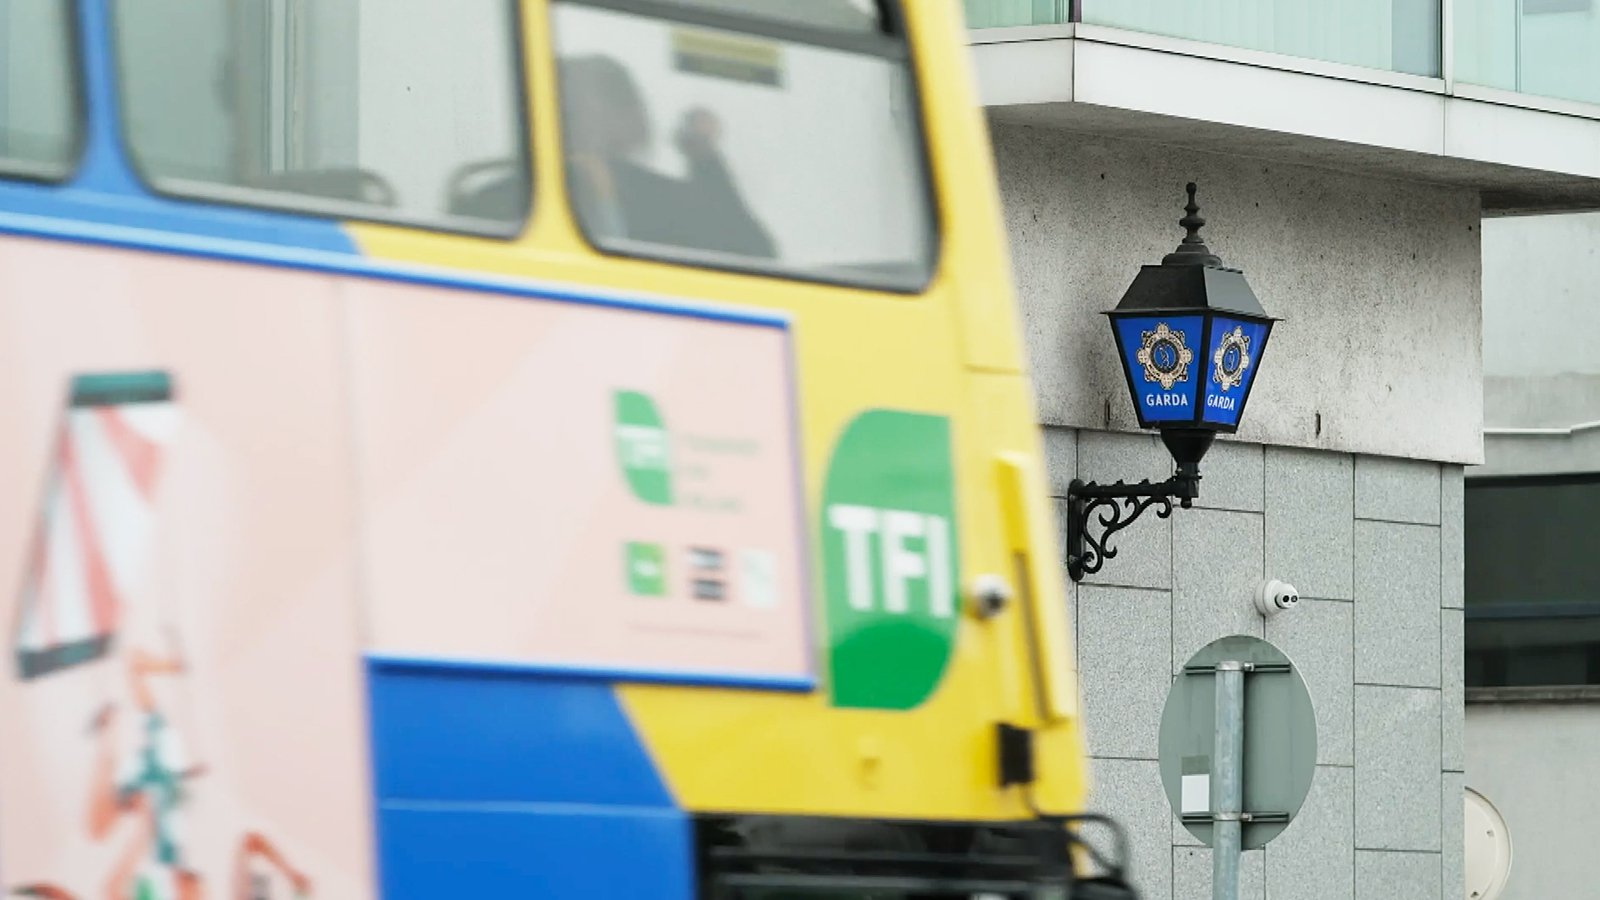 Image - Ballymun resident and former Lord Mayor of Dublin Andrew Montague said gardaí need to be more visible in Ballymun